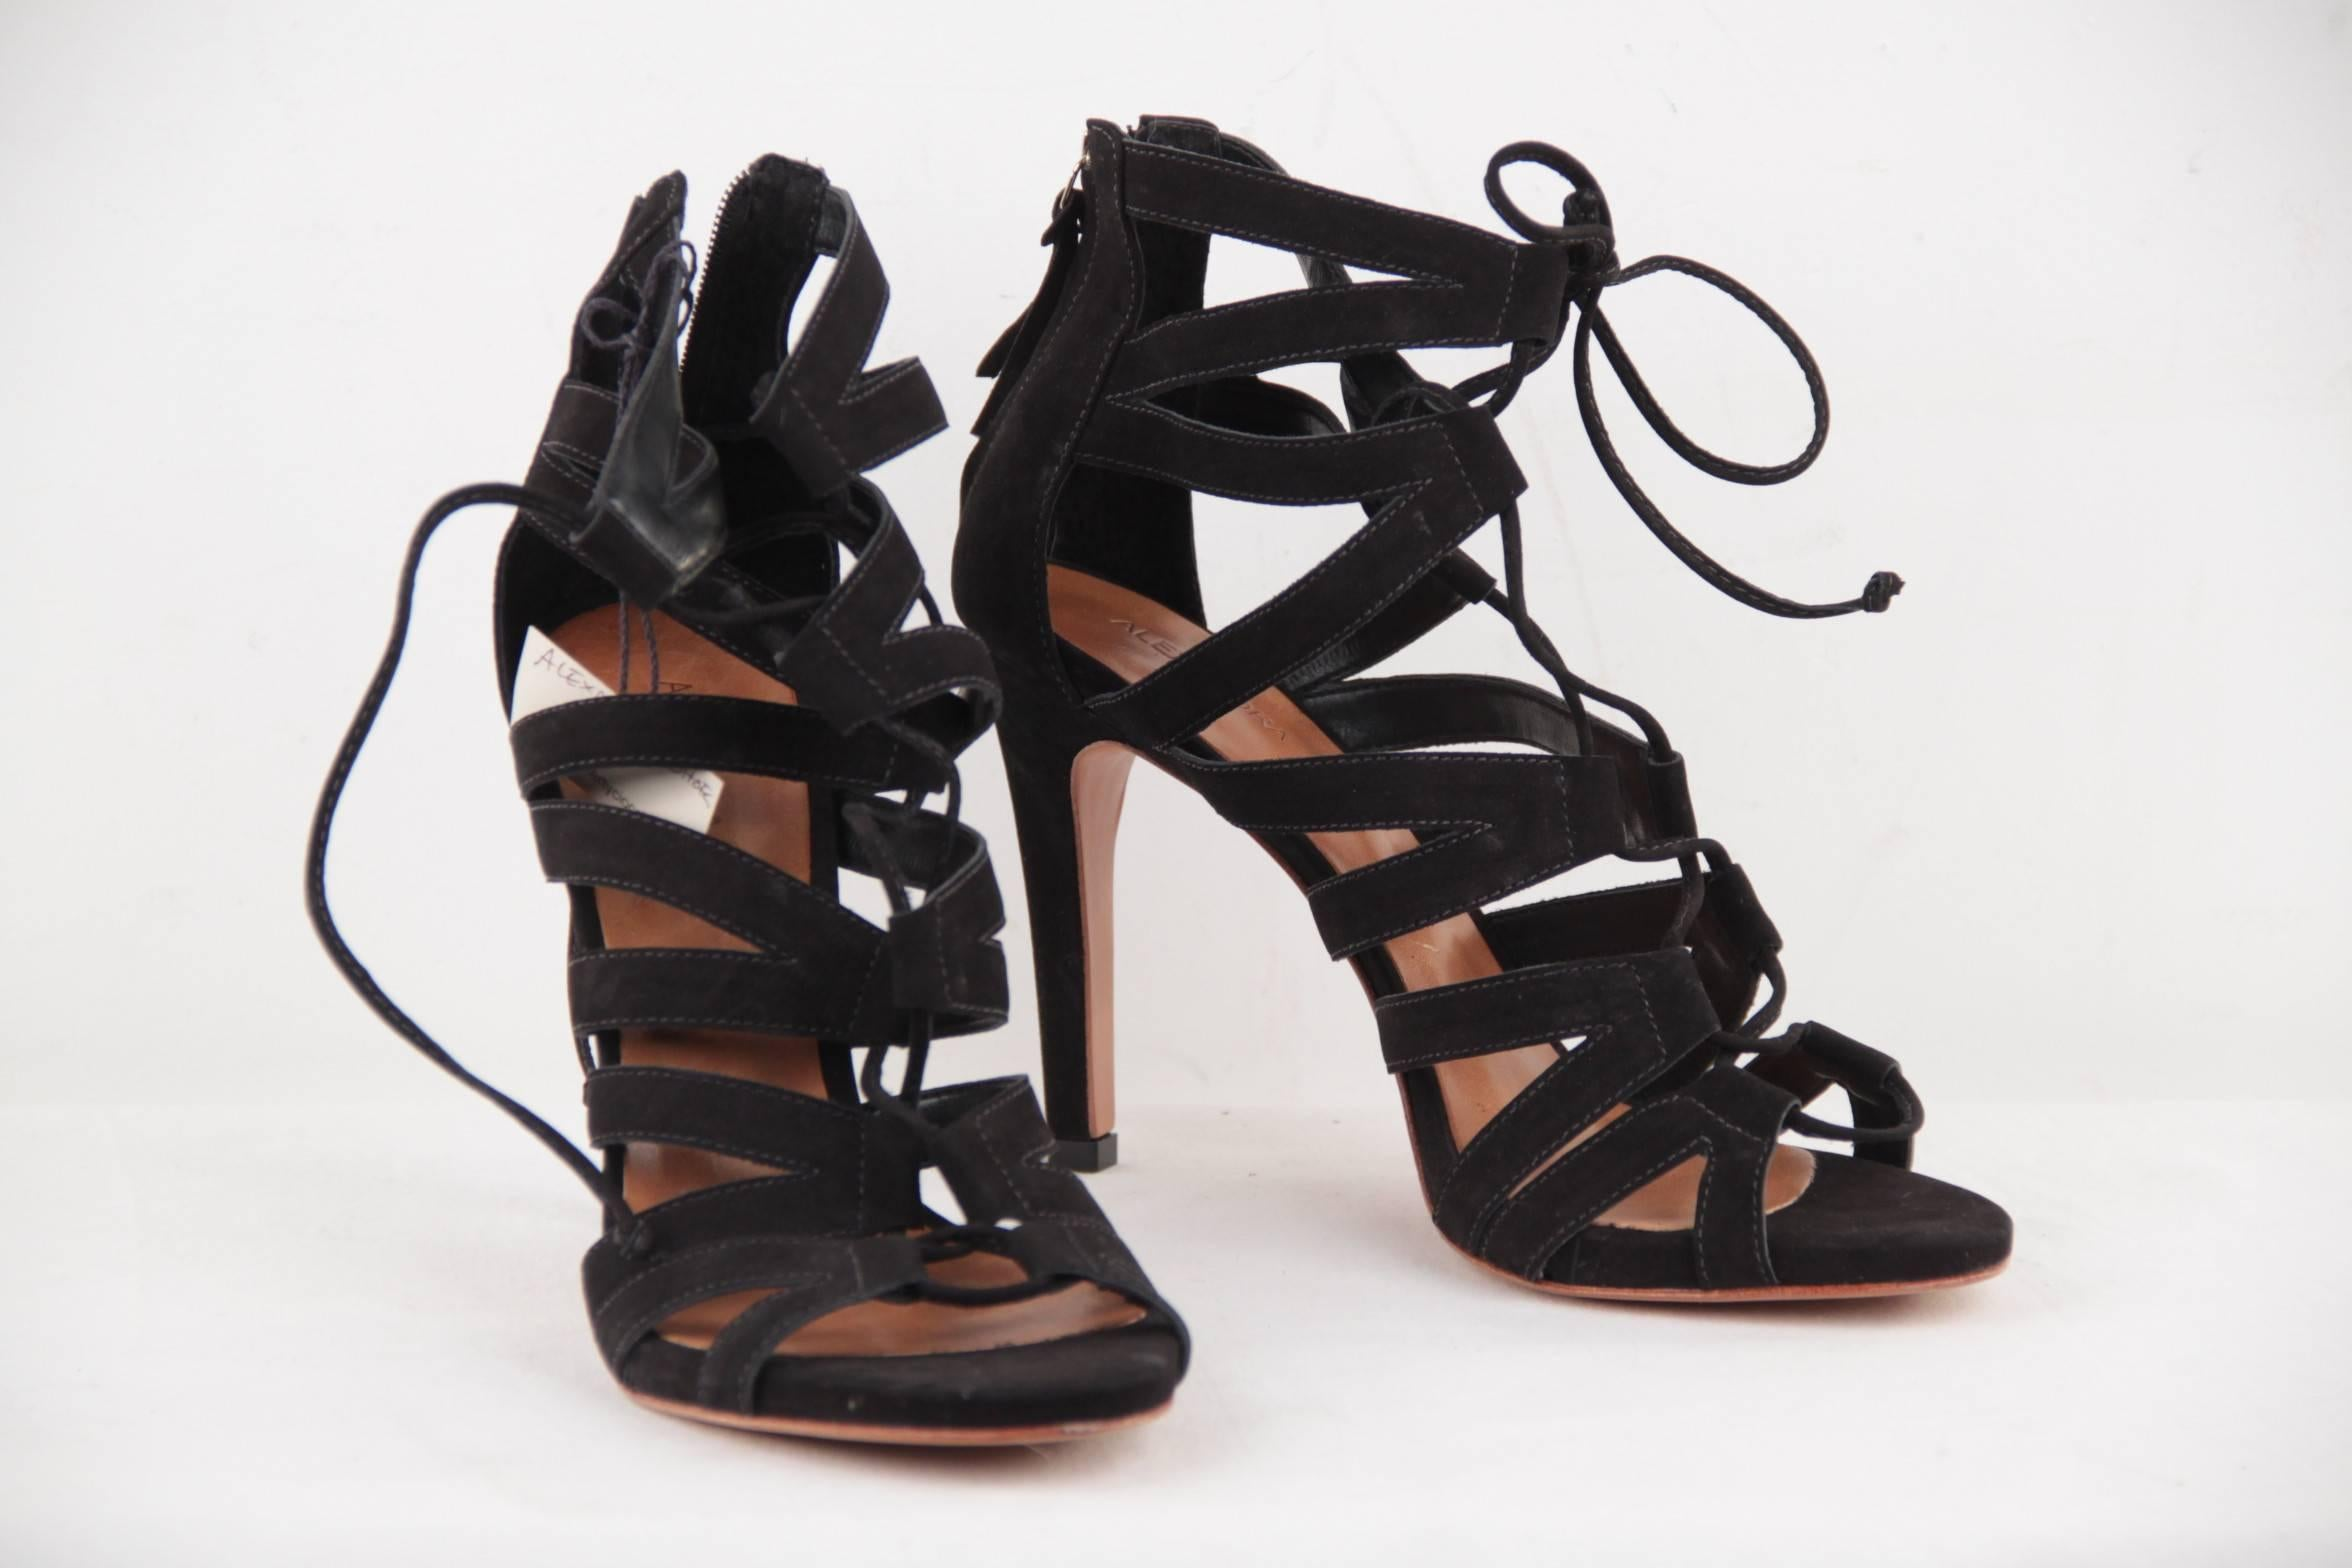 33cfde452 ALEXANDRA ROMA Black Suede LACE UP AMAZON Heeled SANDALS SHOES Pumps Sz 39  For Sale at 1stdibs